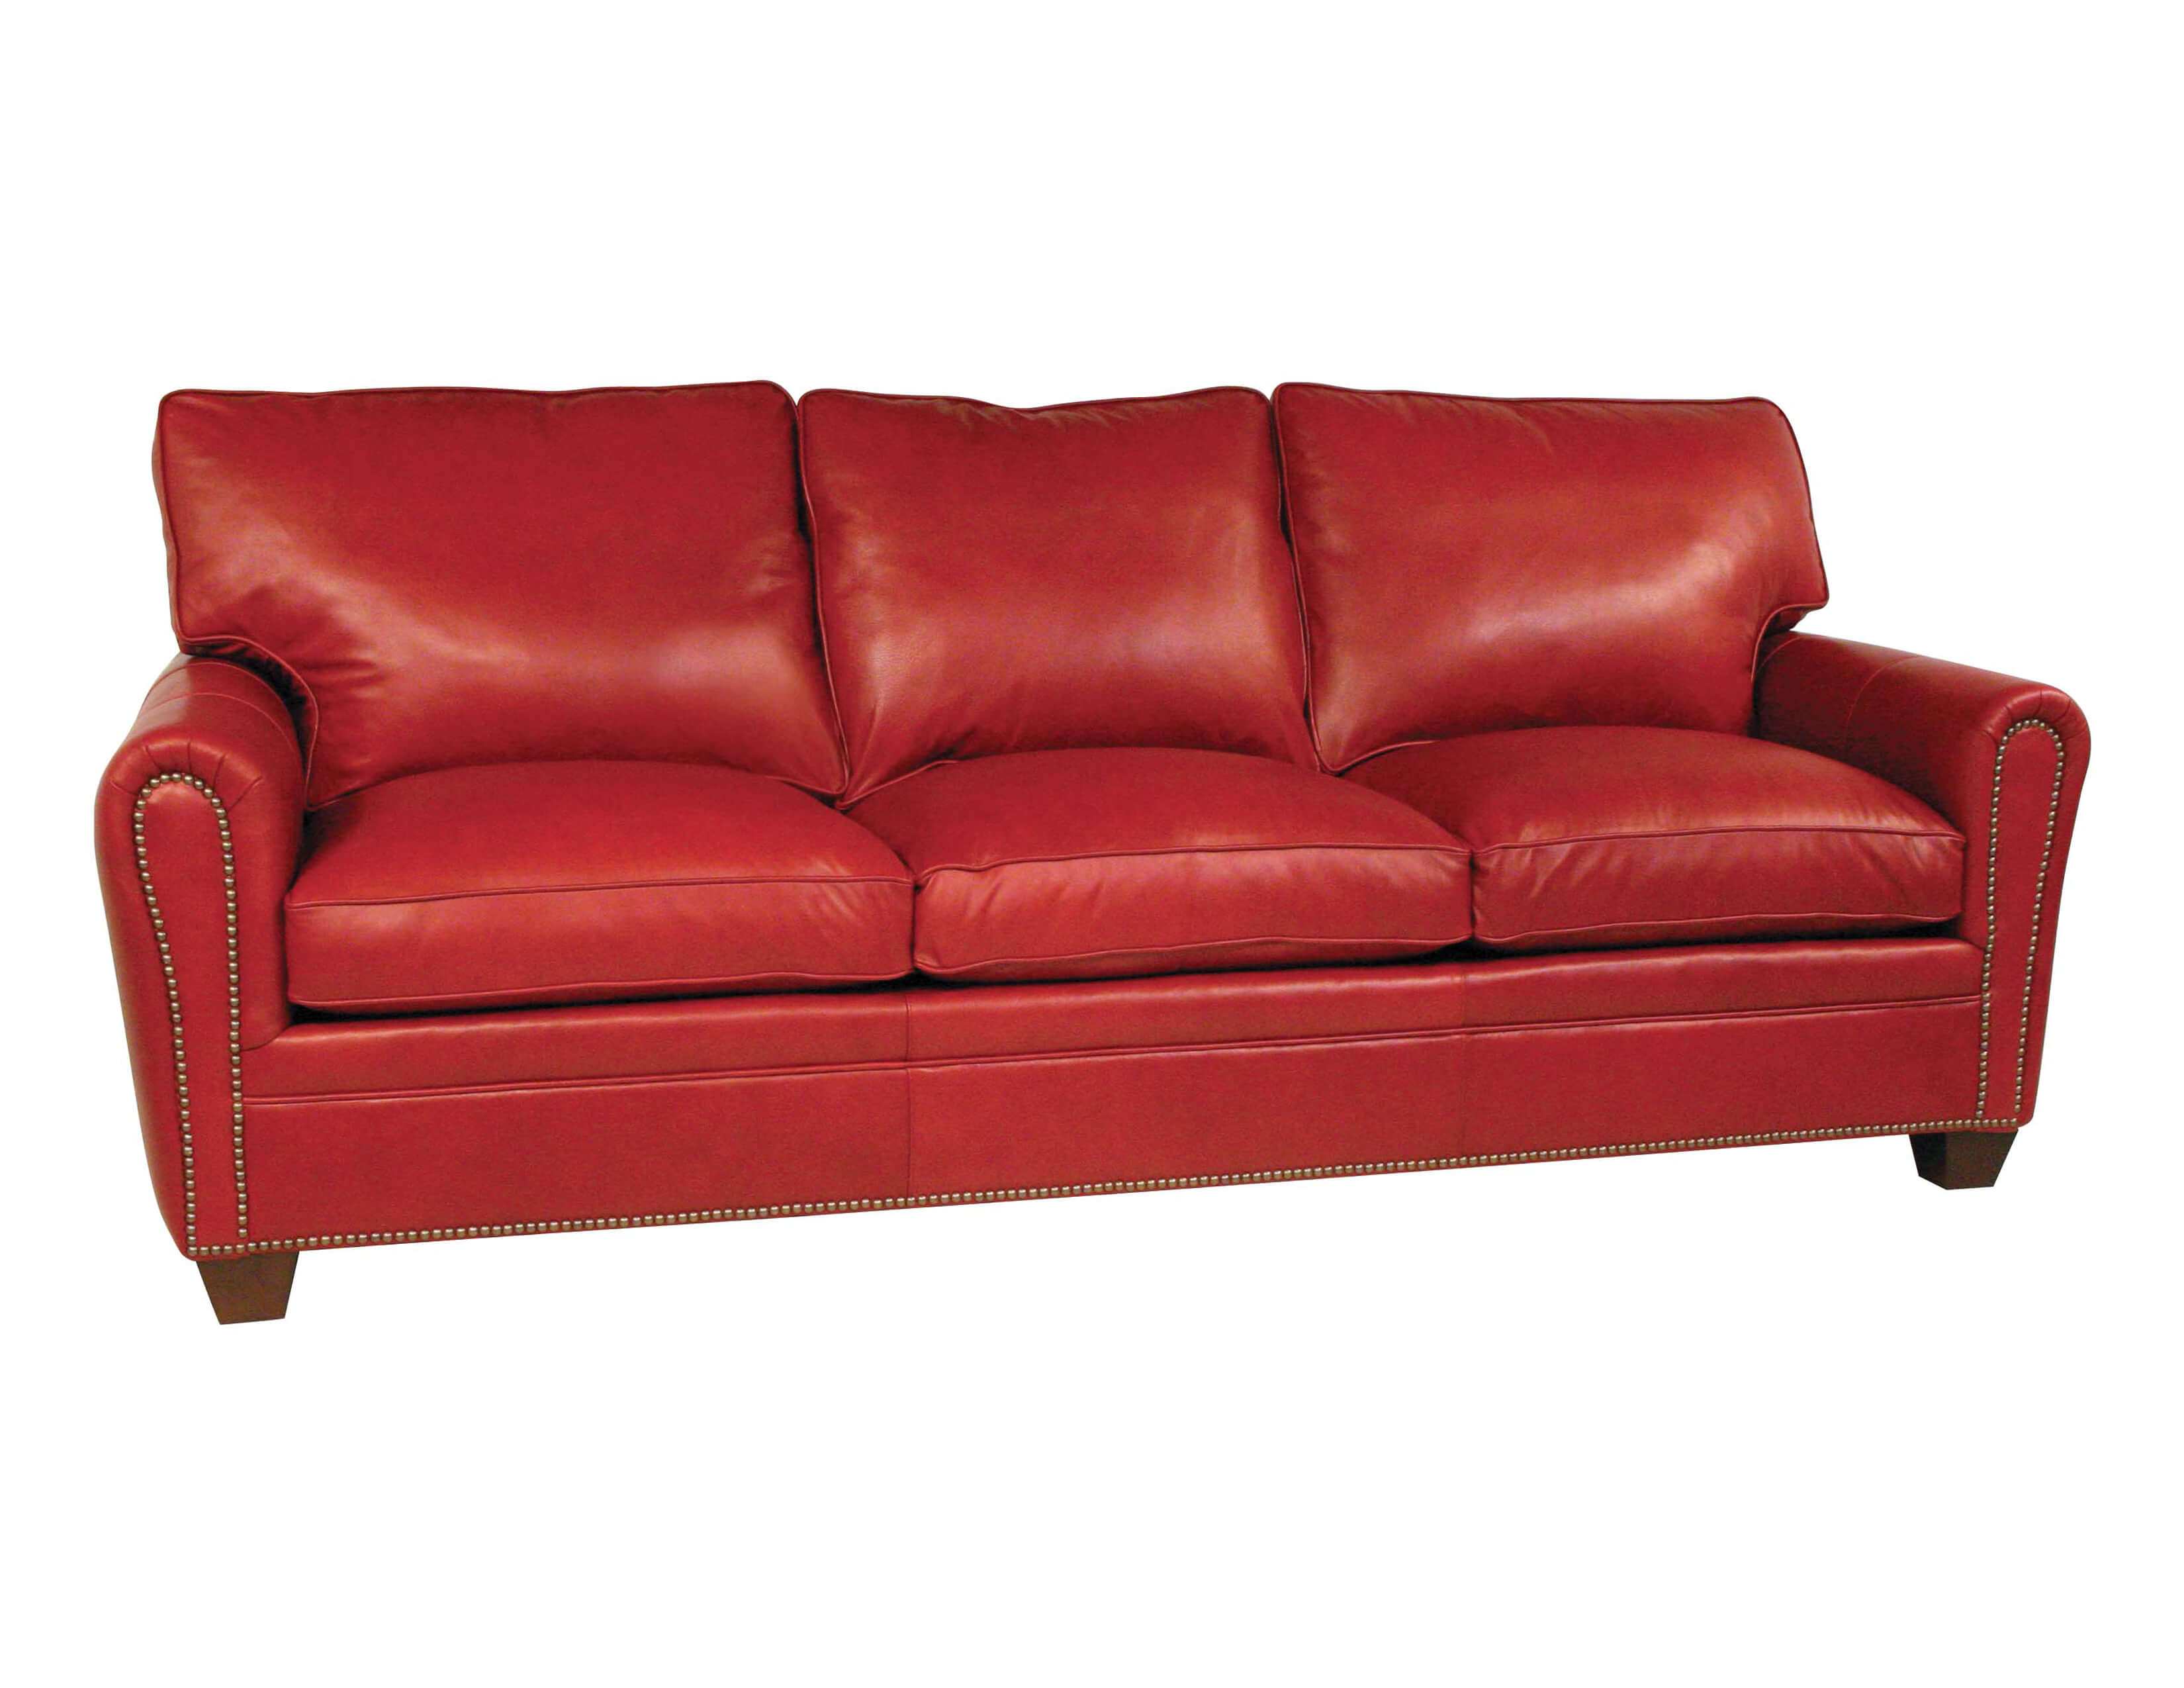 lane home furnishings leather sofa and loveseat from the bowden collection sectional sleeper rooms to go classic